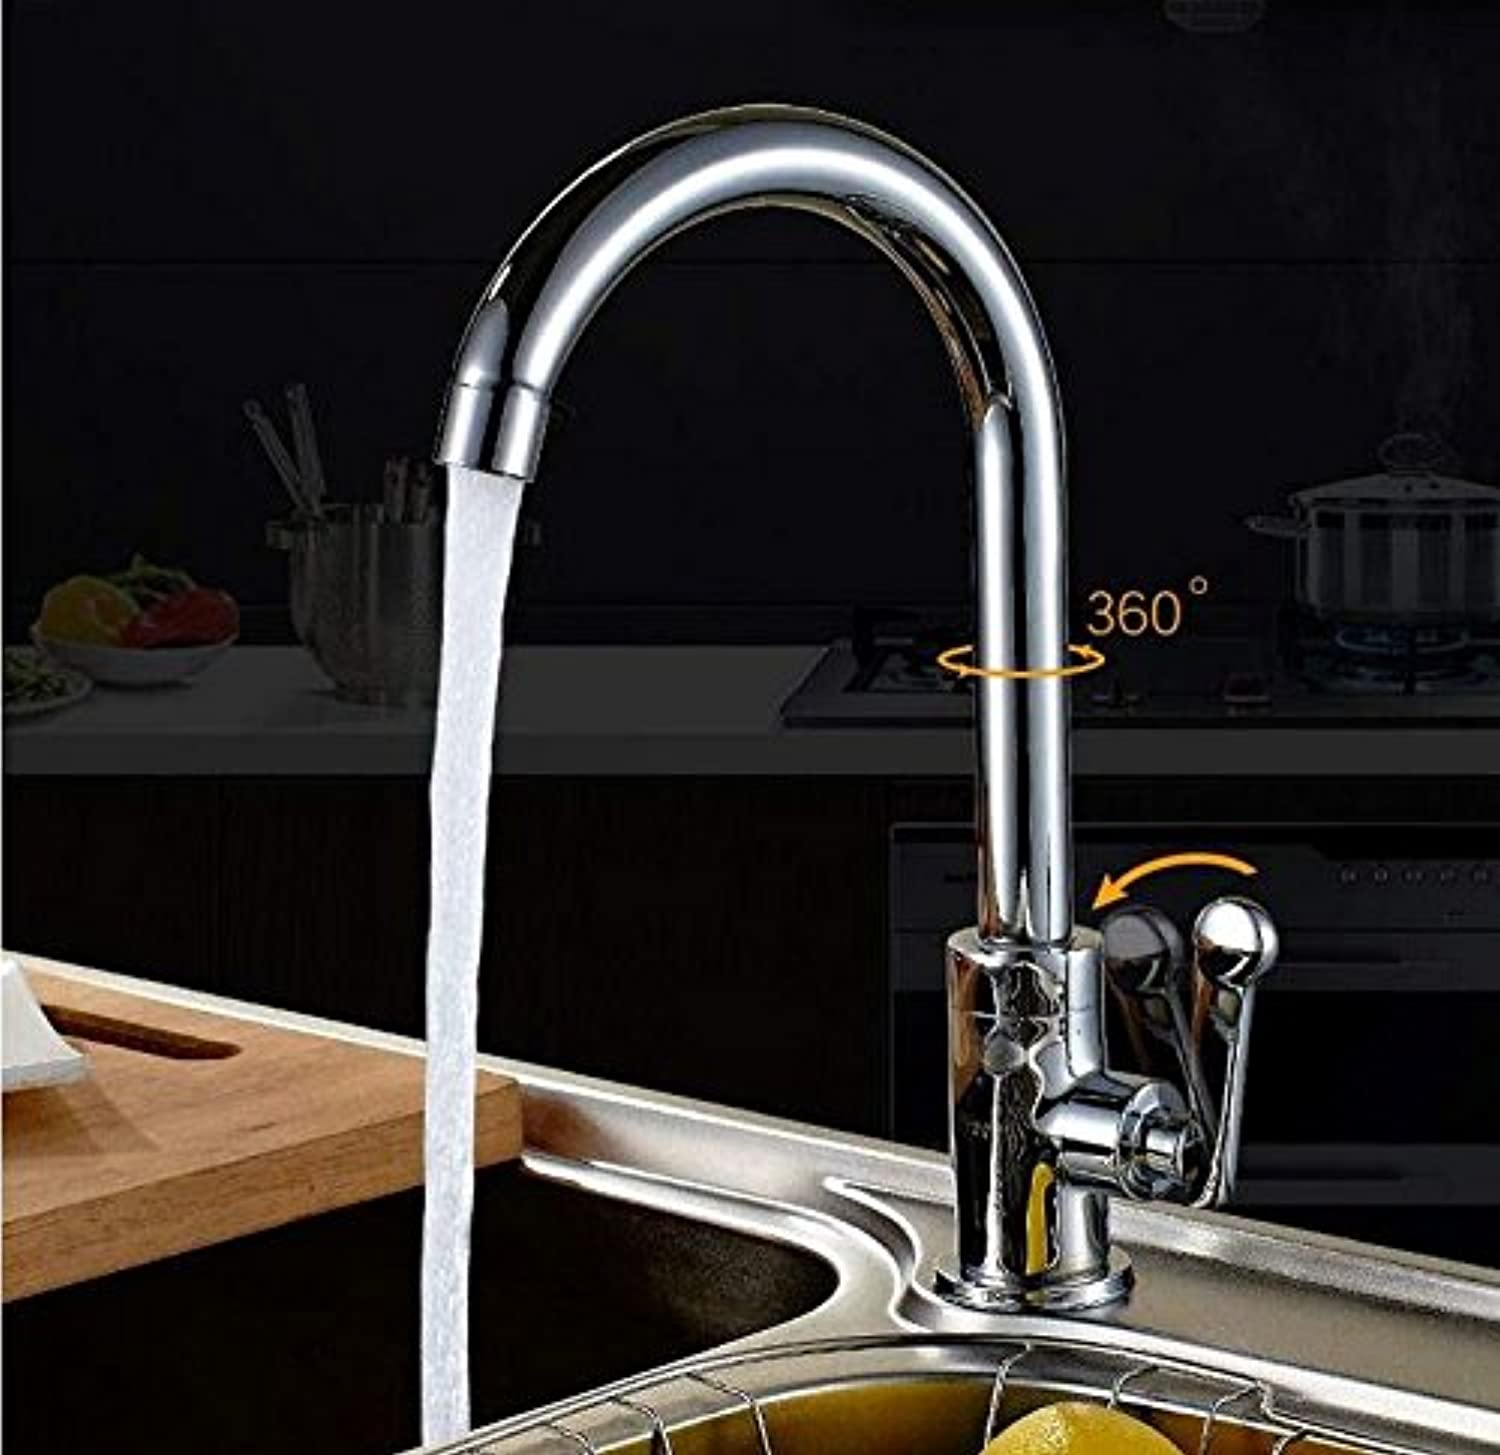 Janitorial & Sanitation Supplies Lpophy Bathroom Sink Mixer Taps Faucet Bath Waterfall Cold and Hot Water Tap for Washroom Bathroom and Kitchen All Copper High Feet Two Holes and Three Holes Commercial Bathroom Sink Taps